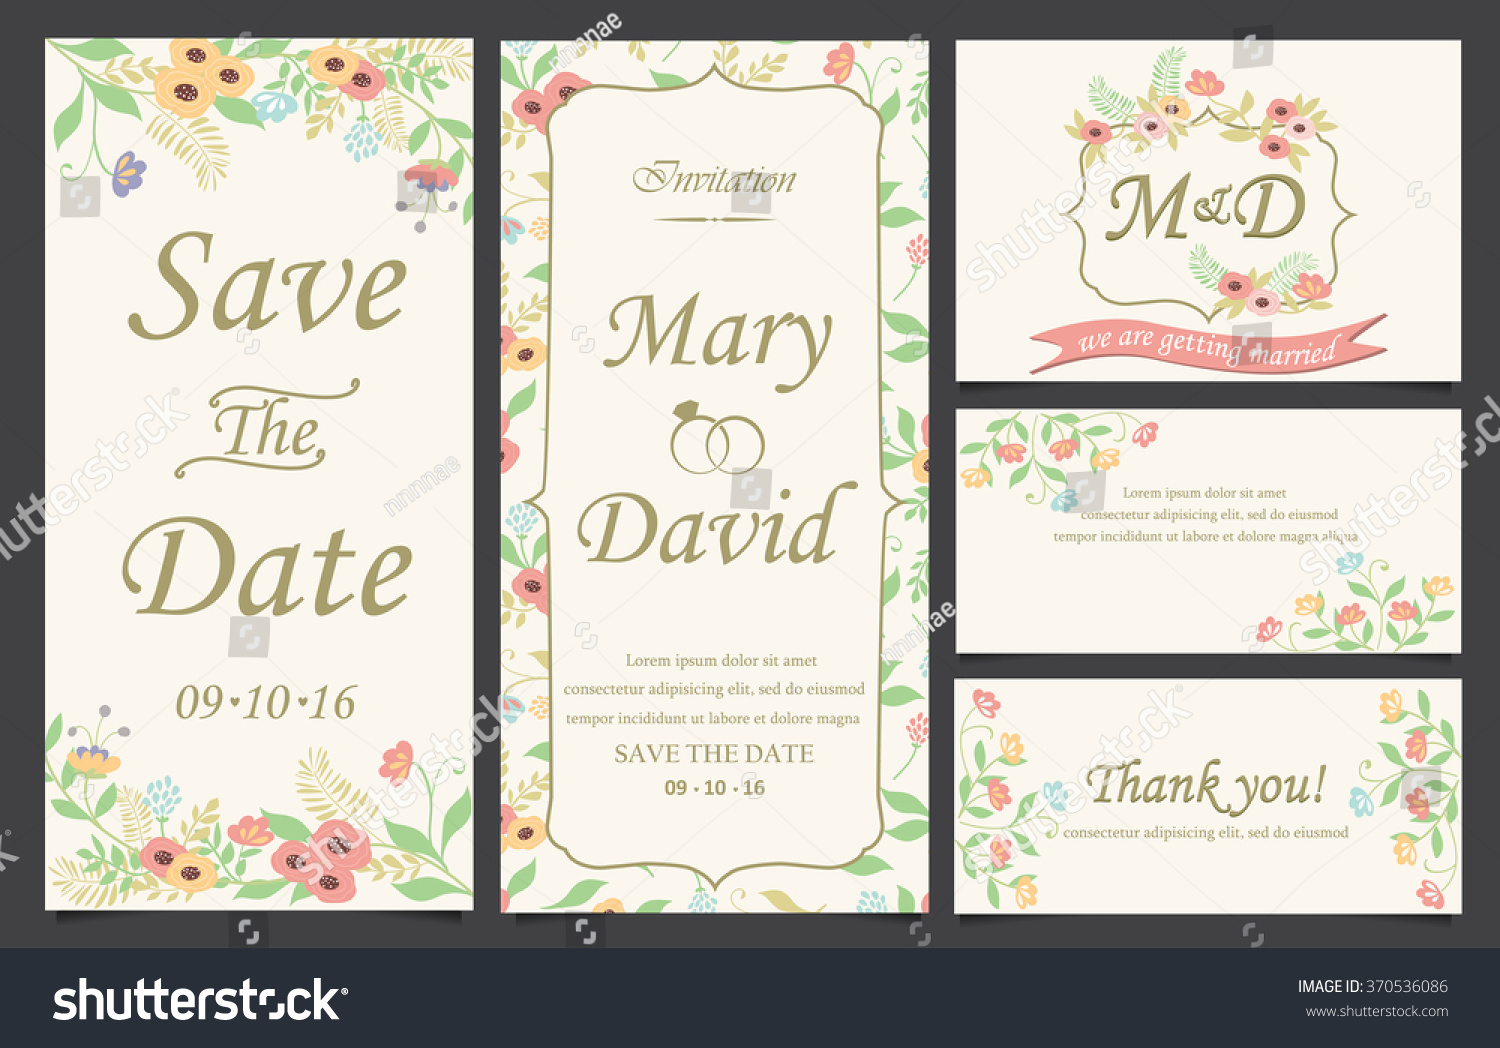 Wedding Invitation Love Valentines Day Template Stock Vector ...